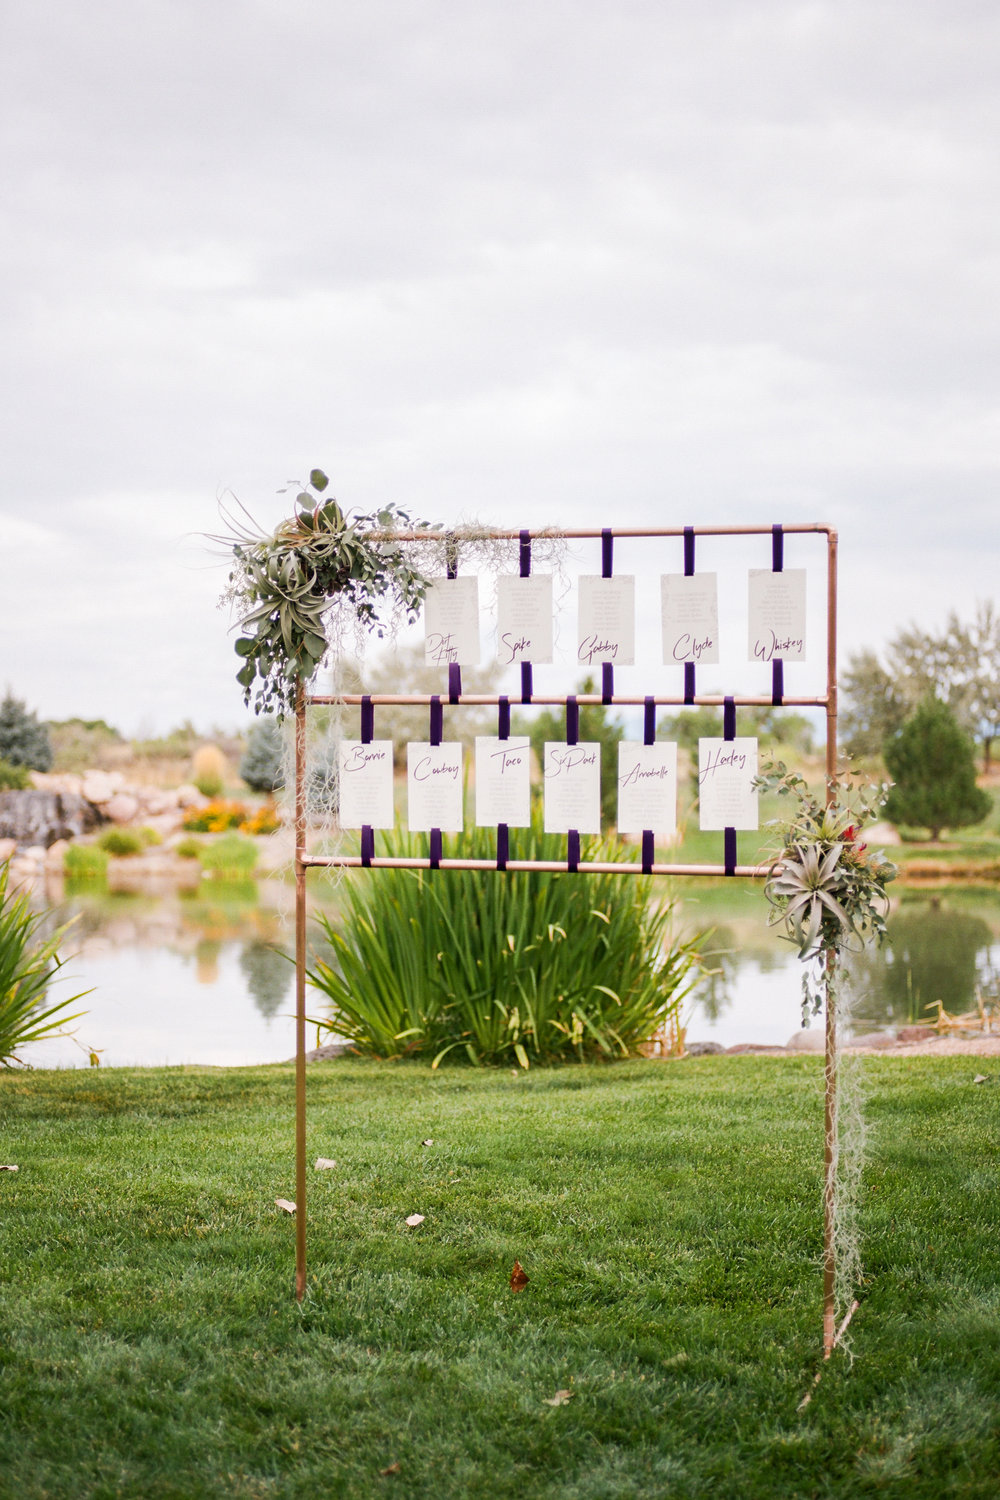 Copper + Airplants - The groom made a second copper structure for the seating chart display that we accented with more airplants, eucalyptus and hanging moss.